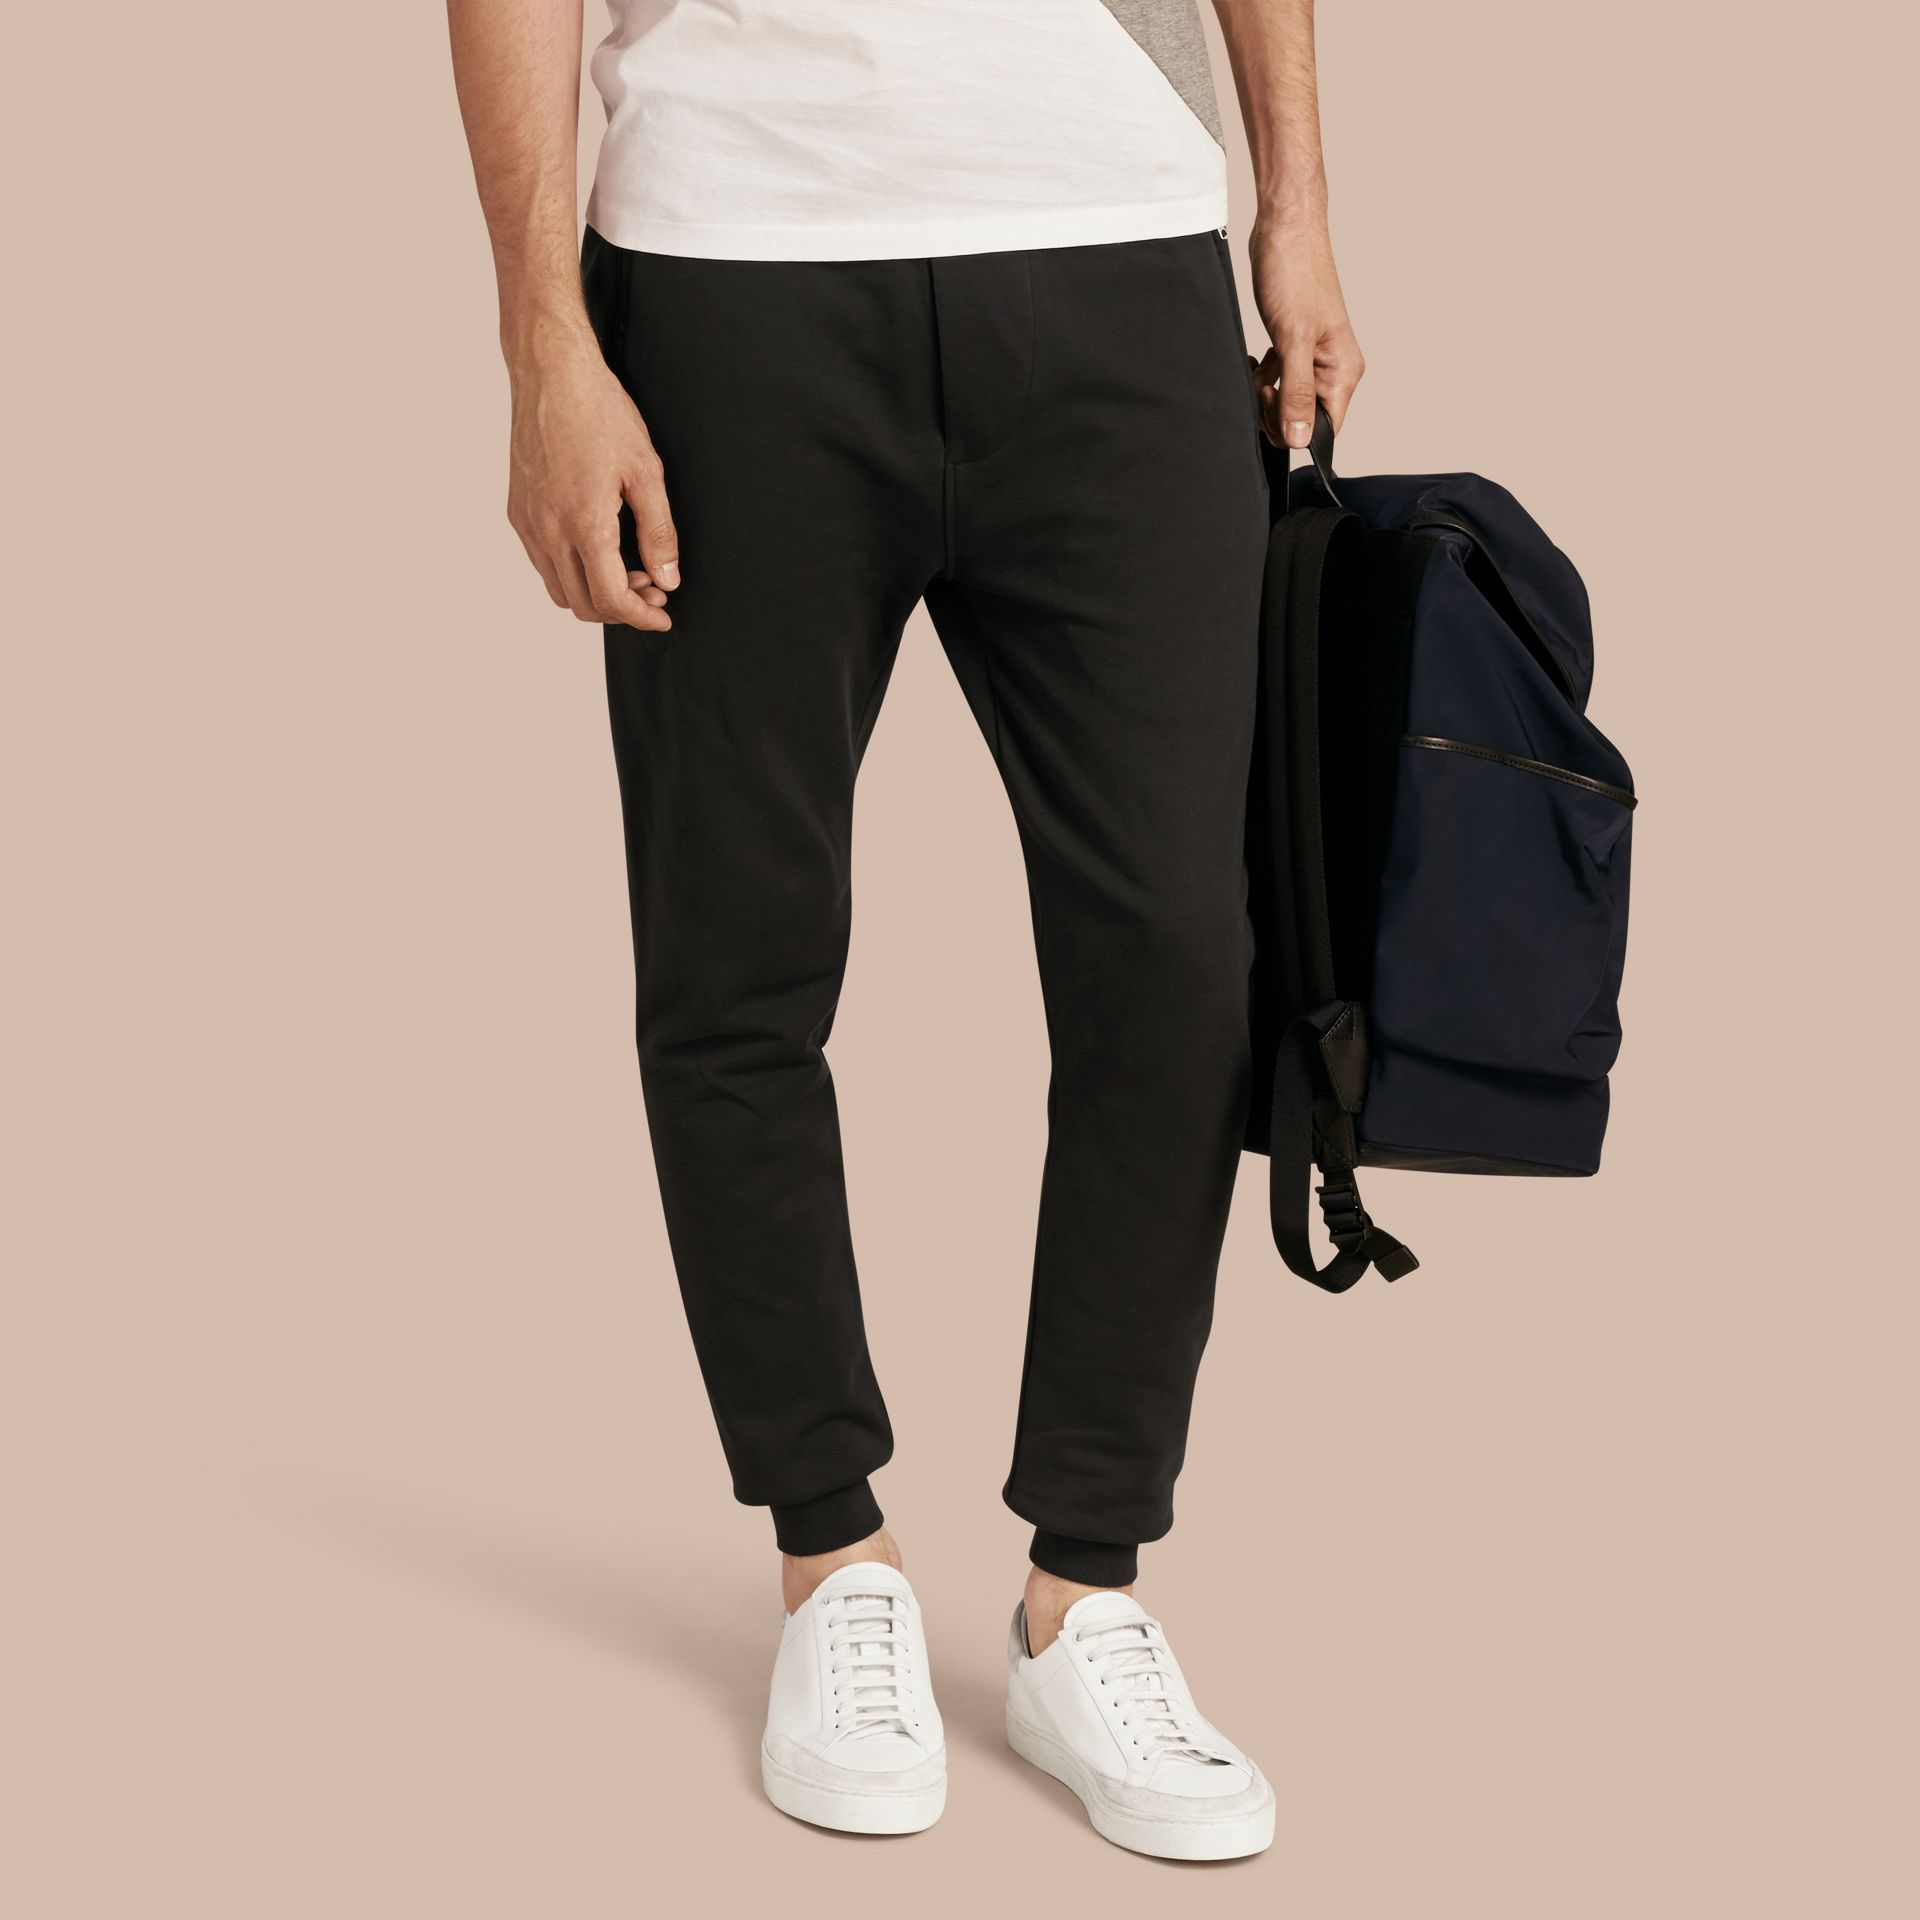 Cotton Sweatpants in Black - Men | Burberry - gallery image 1